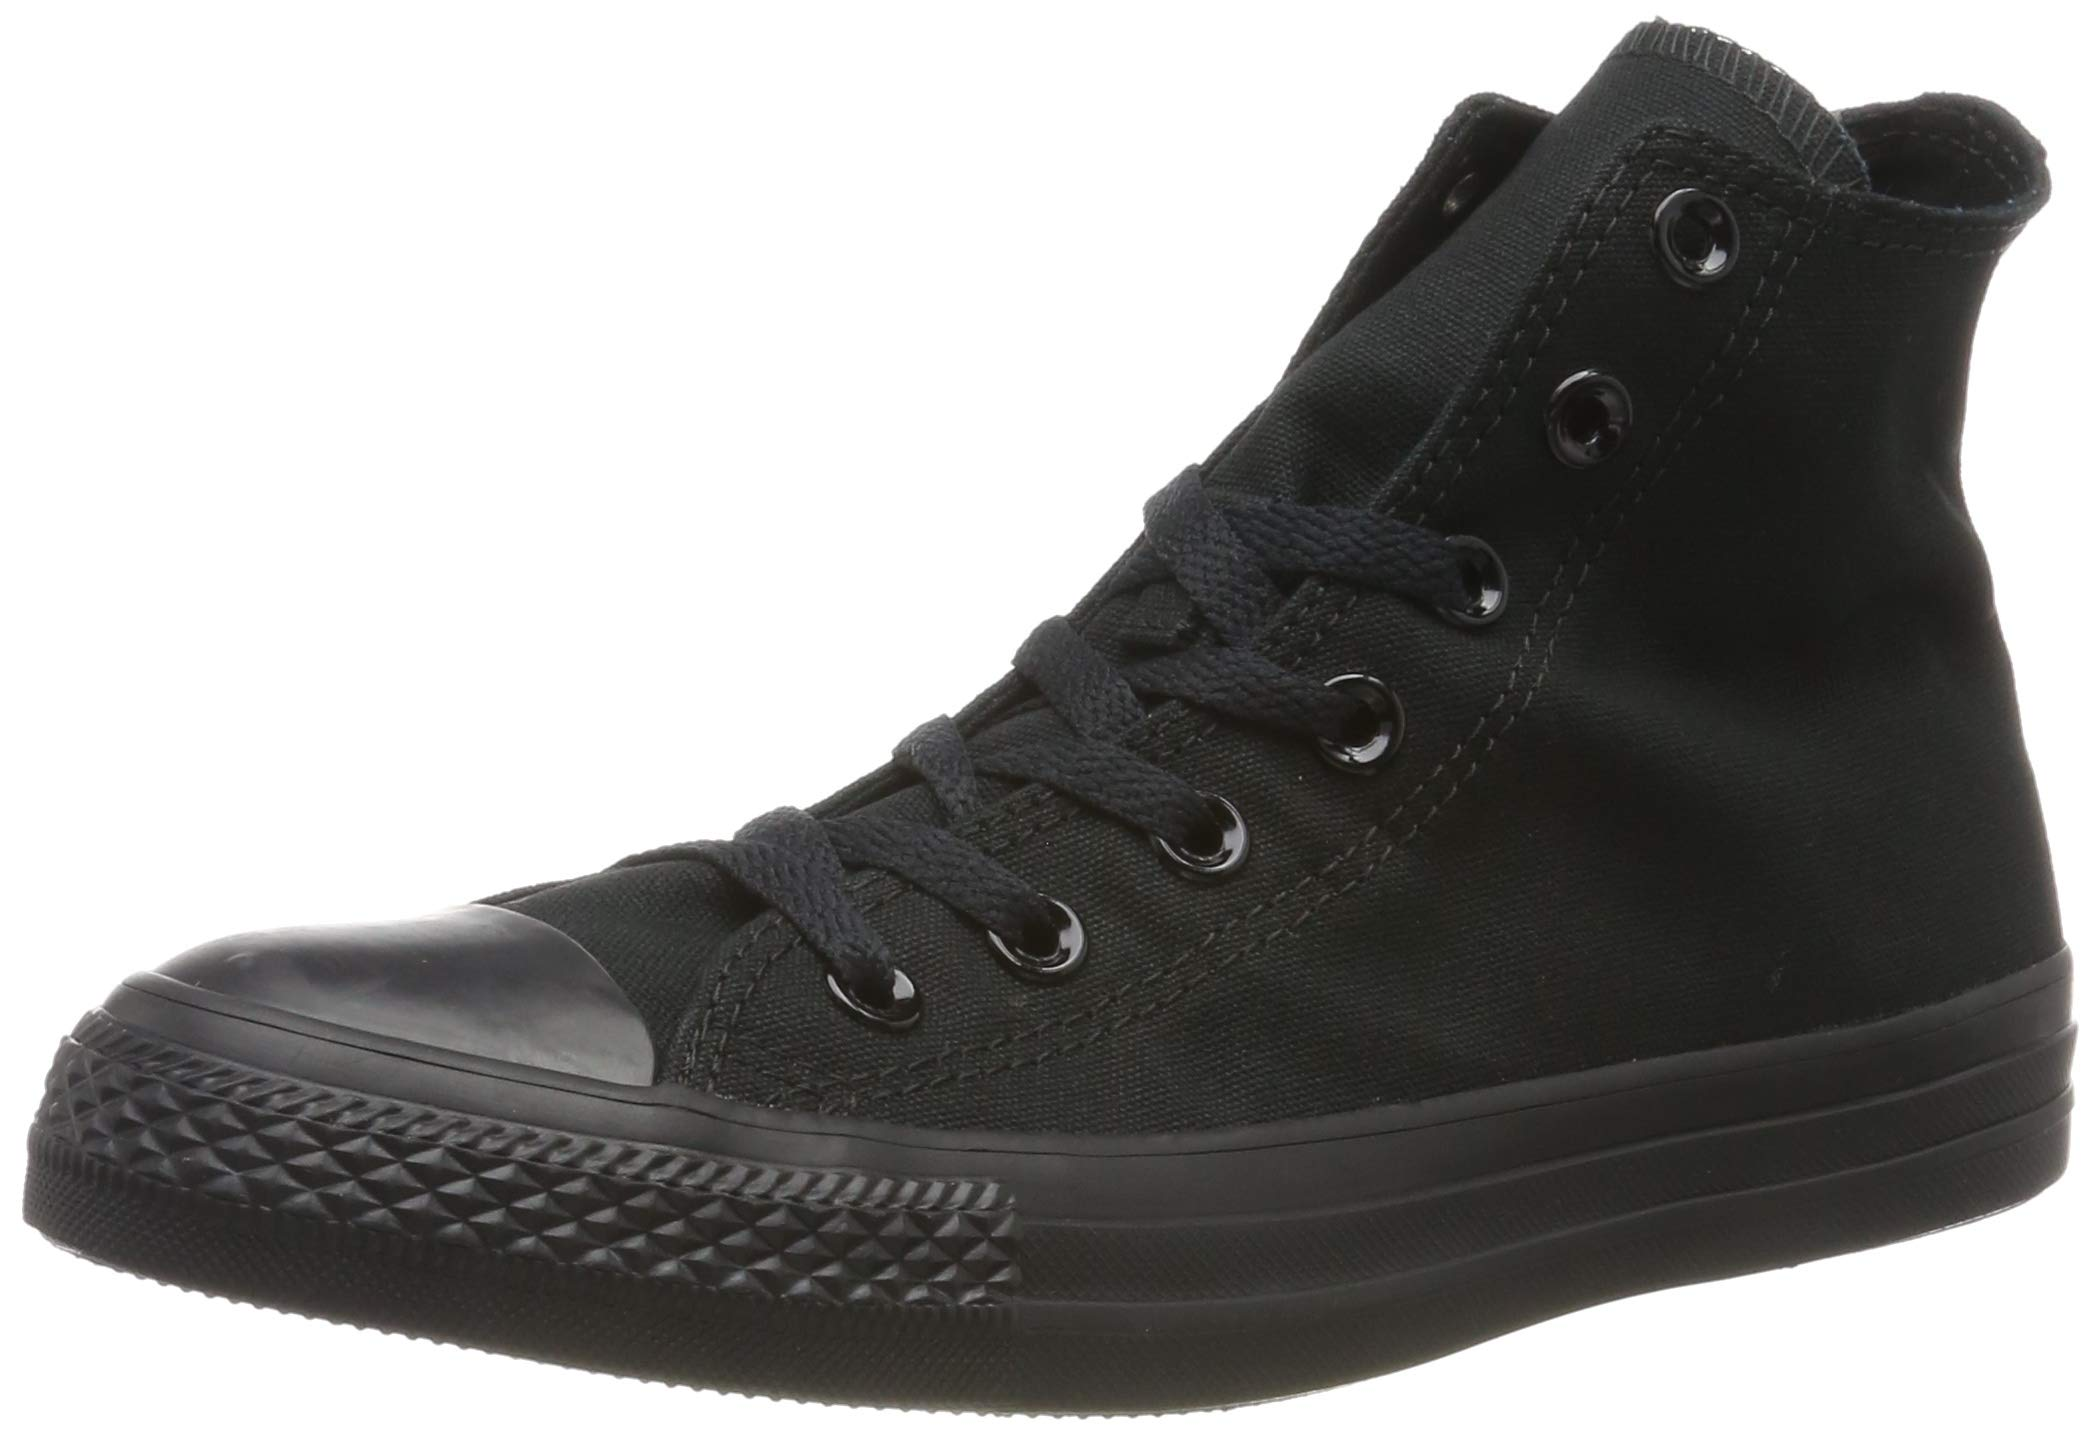 Converse M9160: Chuck Taylor All Star High Top Unisex Black White Sneakers